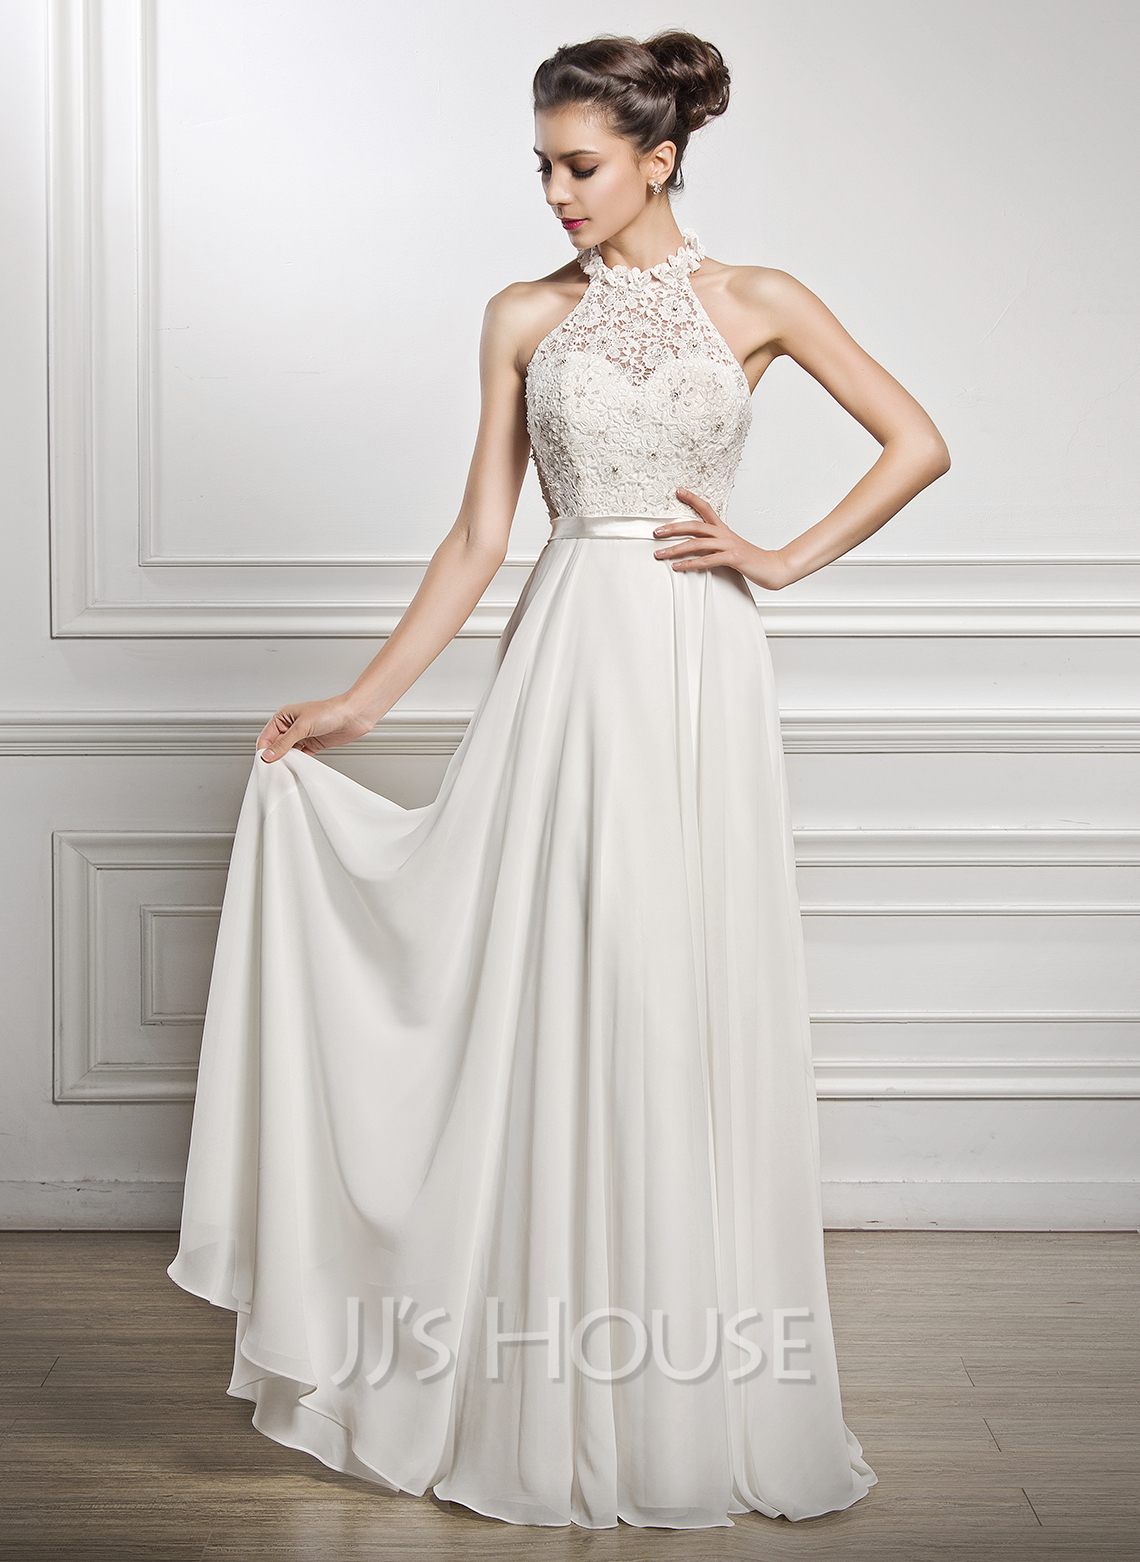 A Line Princess Scoop Neck Floor Length Chiffon Wedding Dress With Beading Sequins Loading Zoom